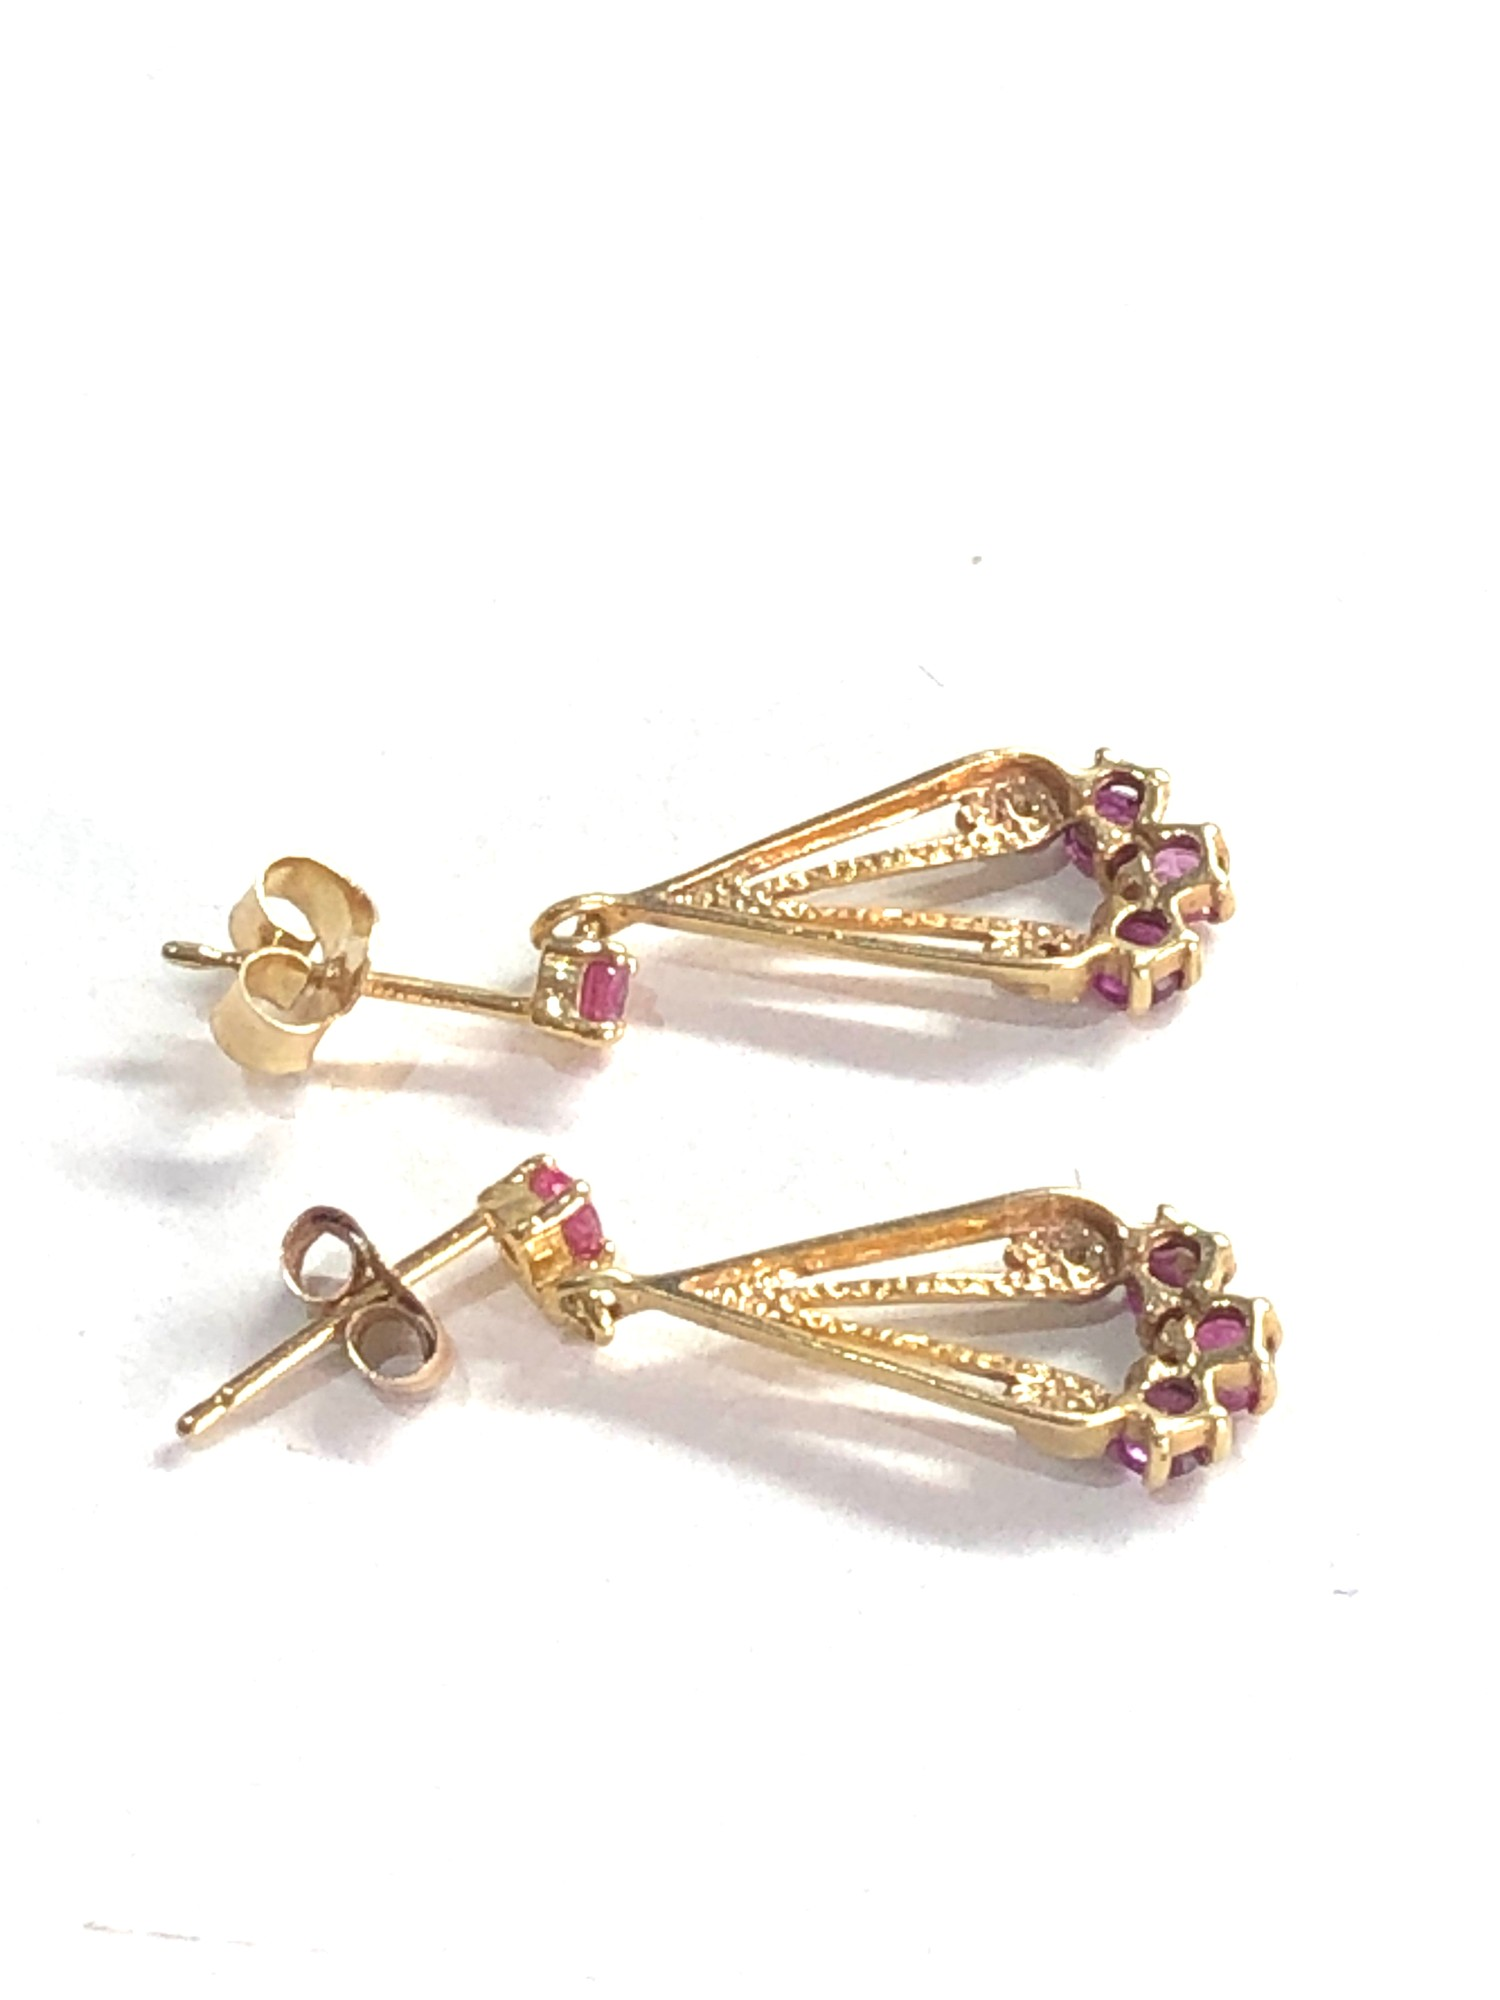 9ct gold diamond and ruby drop earrings - Image 3 of 3